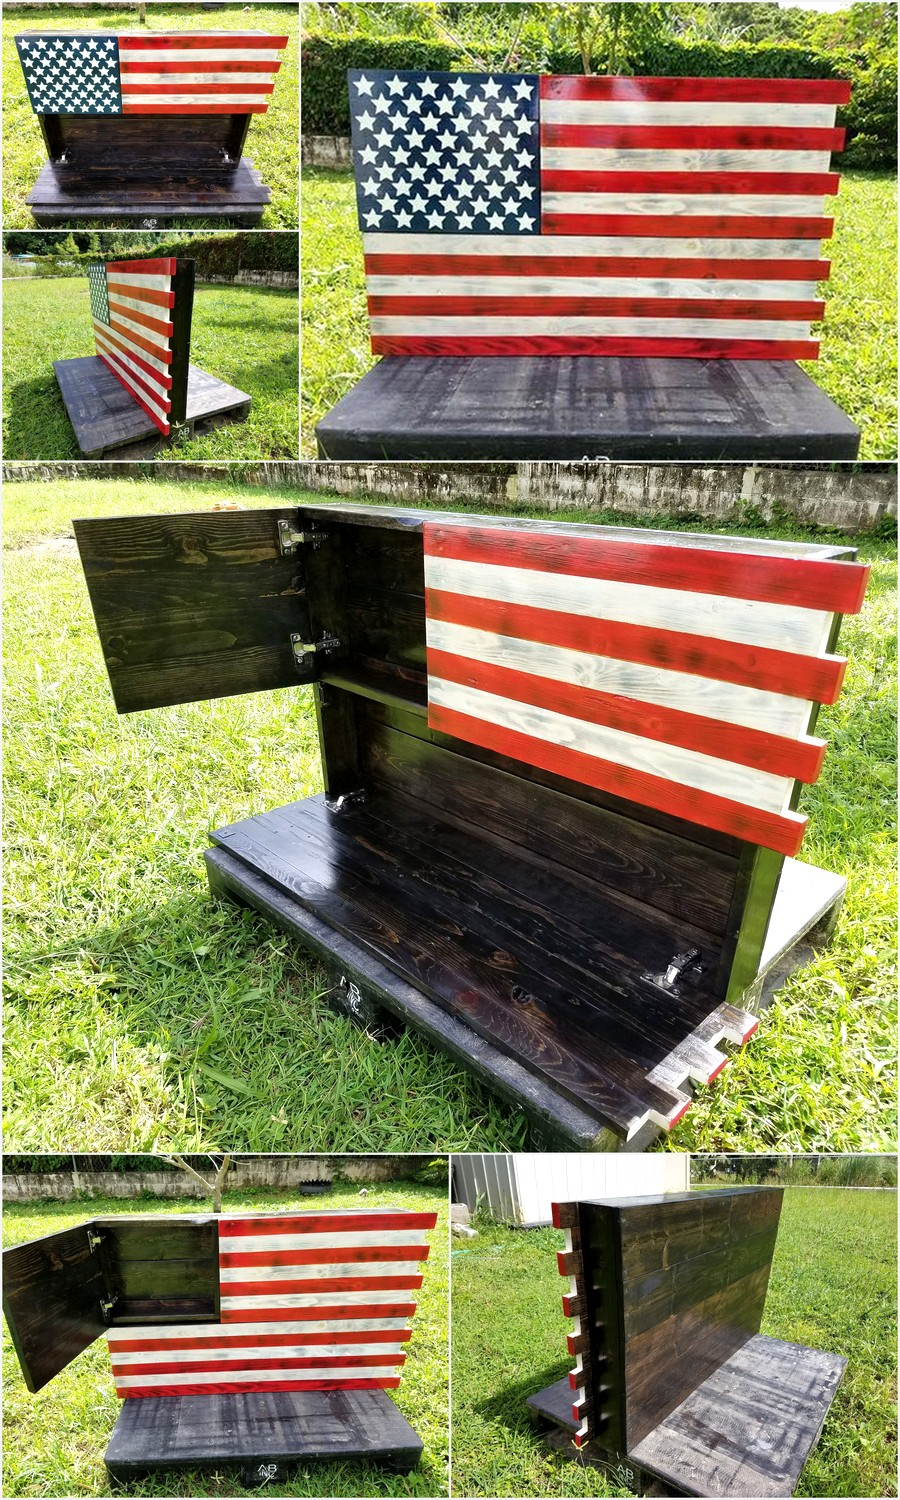 pallets-made-hanging-american-flag-concealment-case